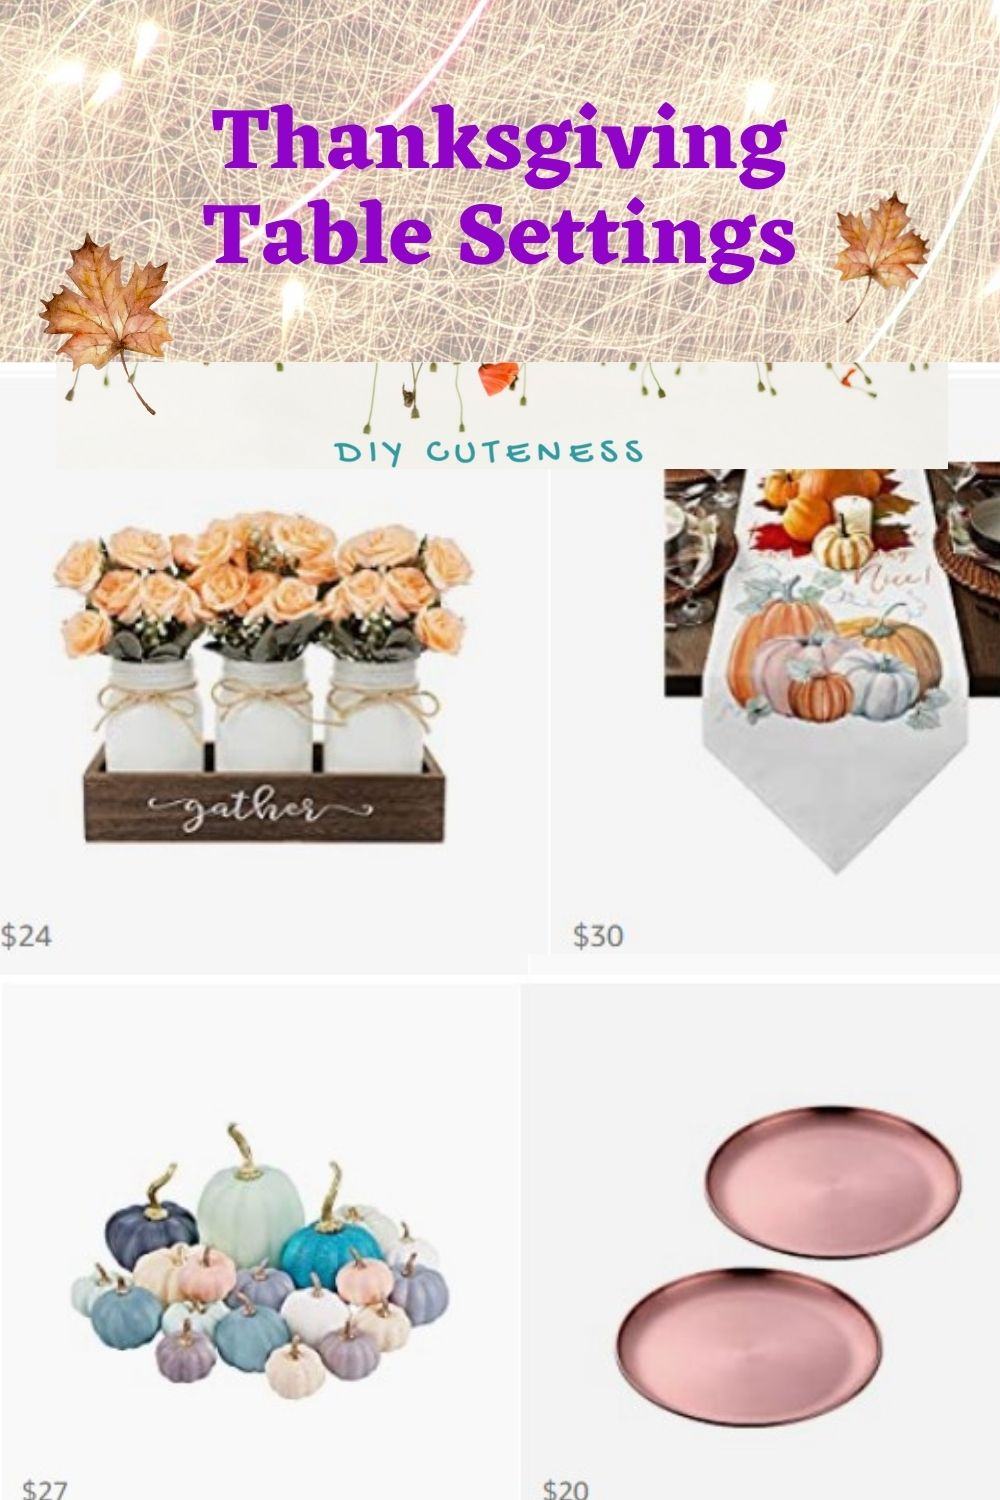 Thanksgiving Table Settings Ideas that are too cute not to Instagram!